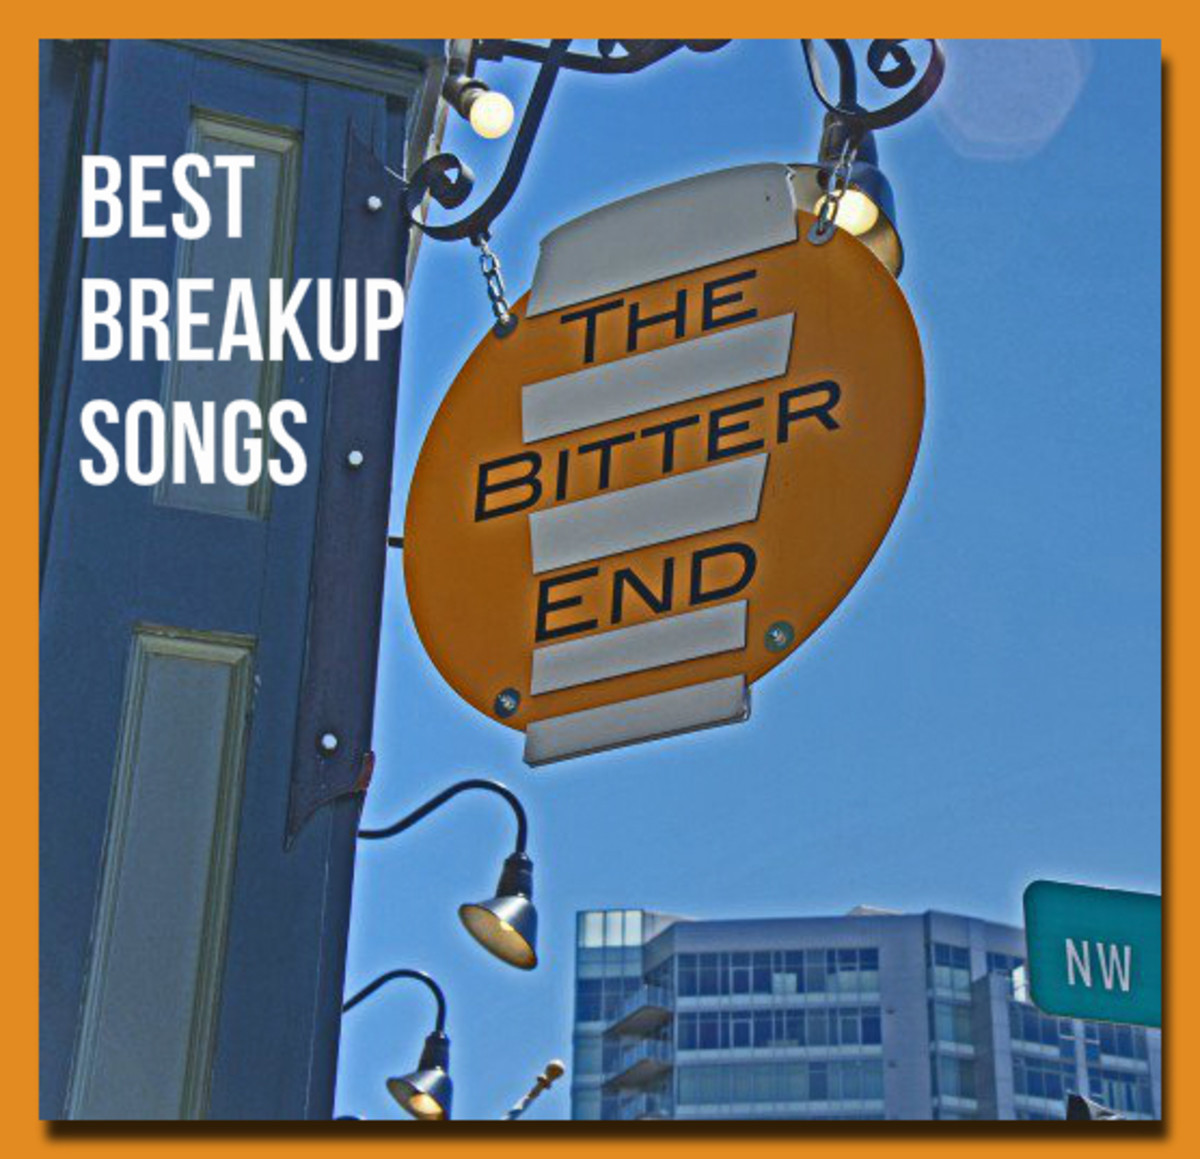 86 Songs About Break Ups, Heartbreak and Divorce